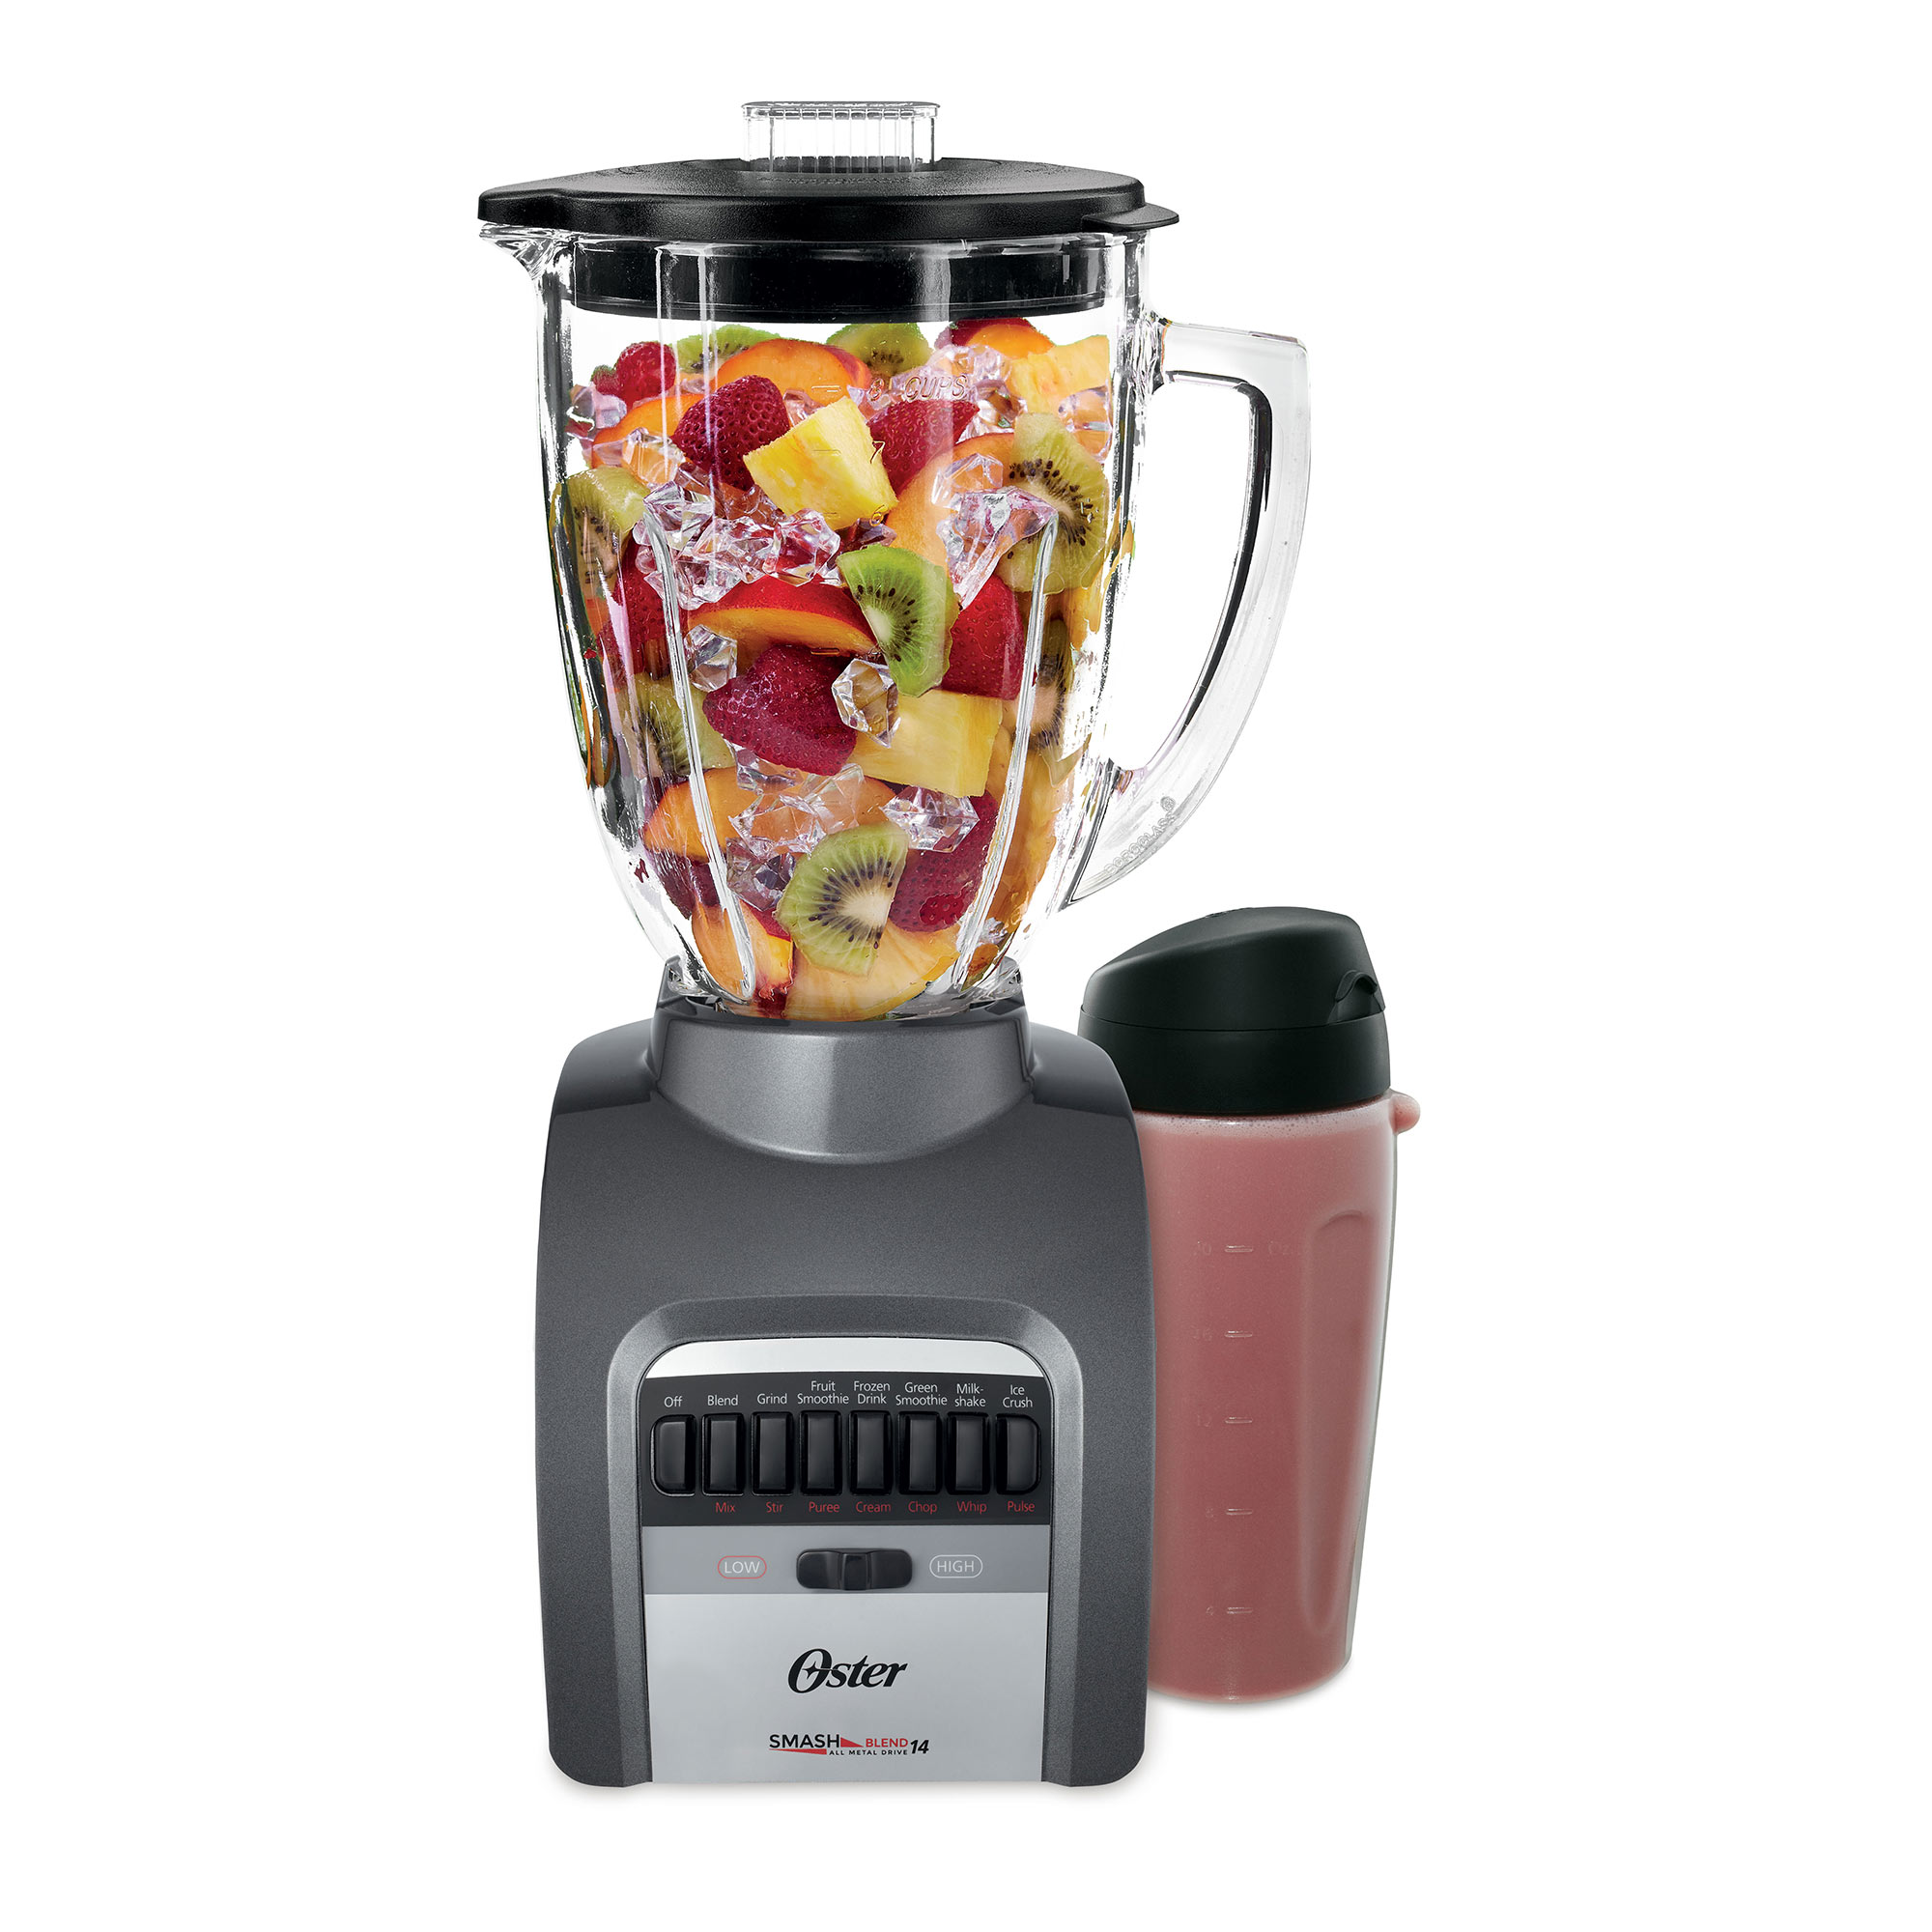 Oster Smash Blend 300 Blender with Smoothie Cup, 14 Speed (BLSTTG-PGP-BG3)